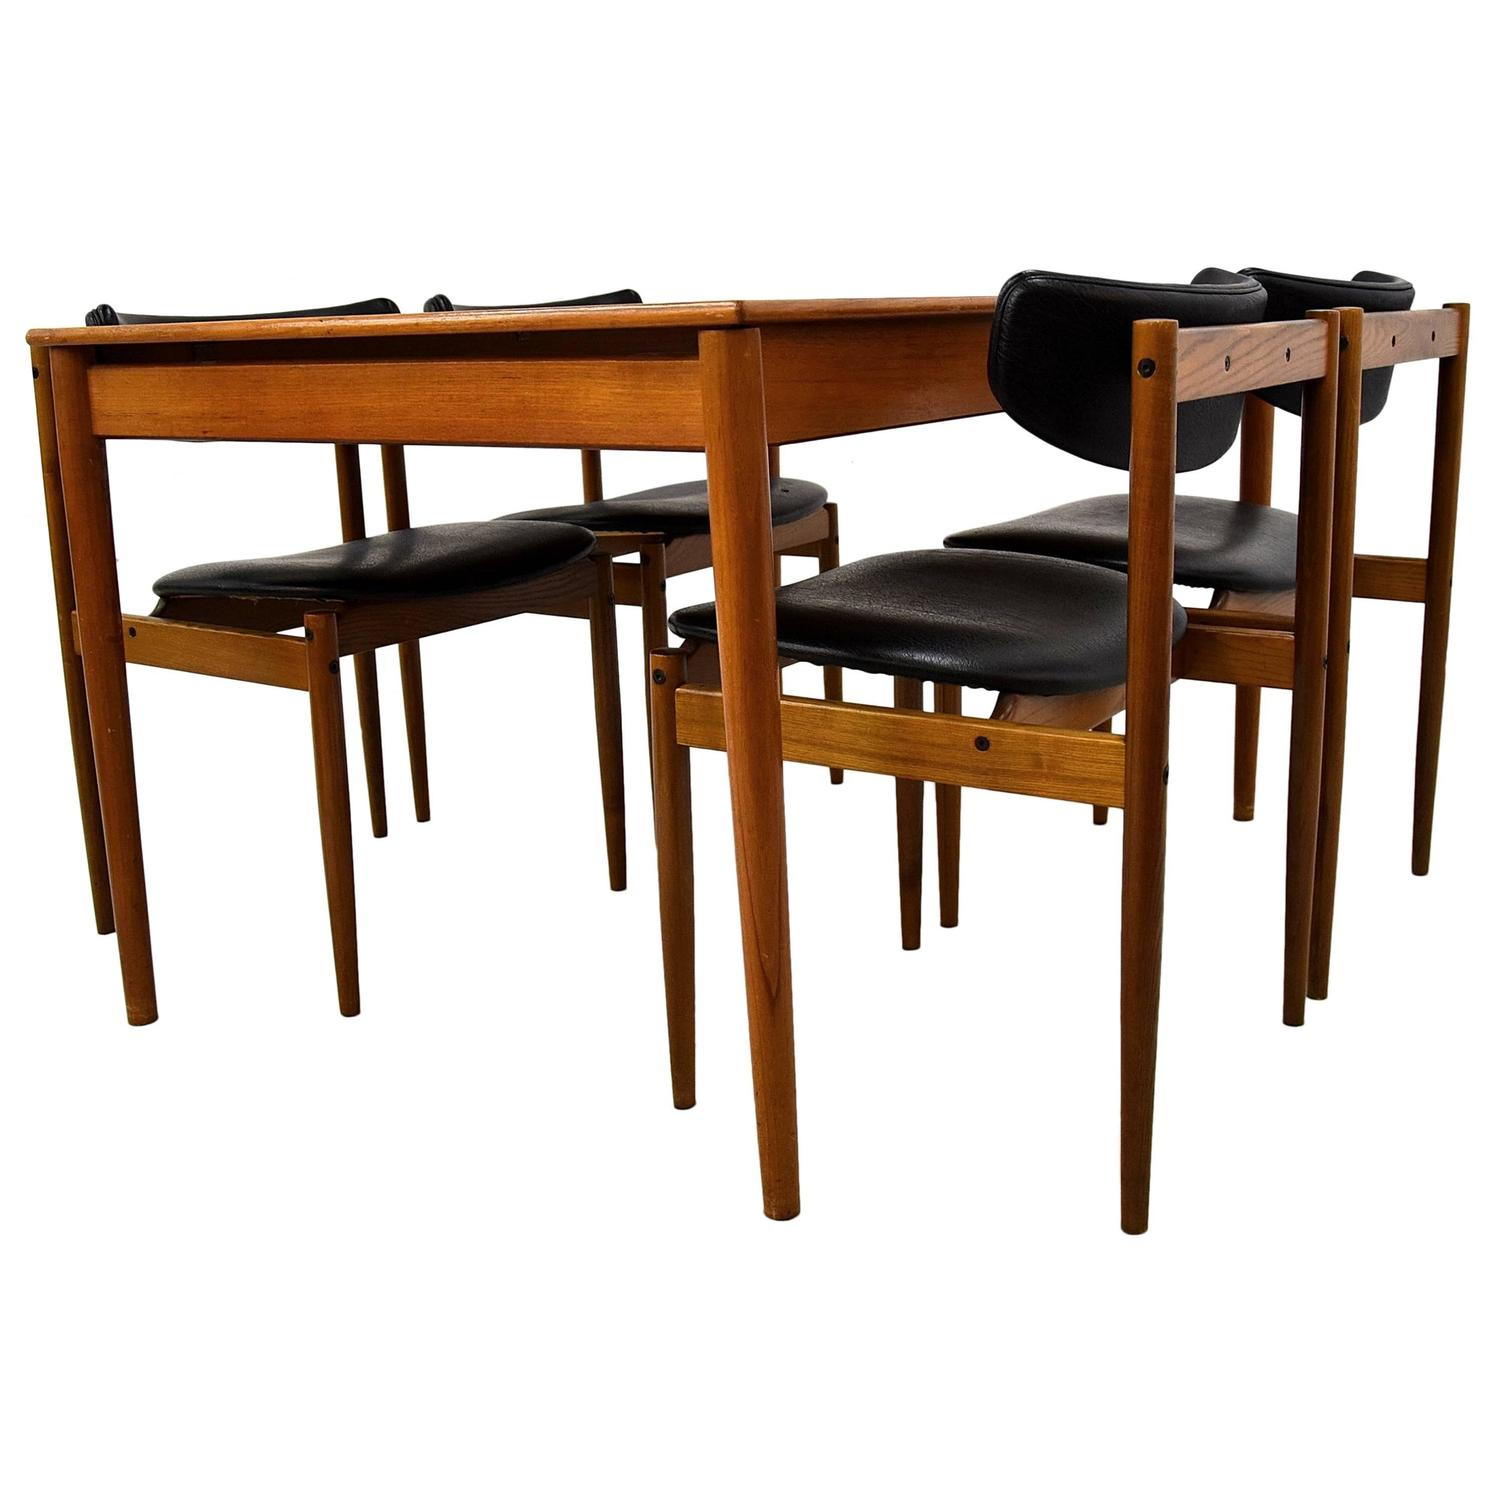 1960s Dining Room Set By Thereca For Sale At 1stdibs